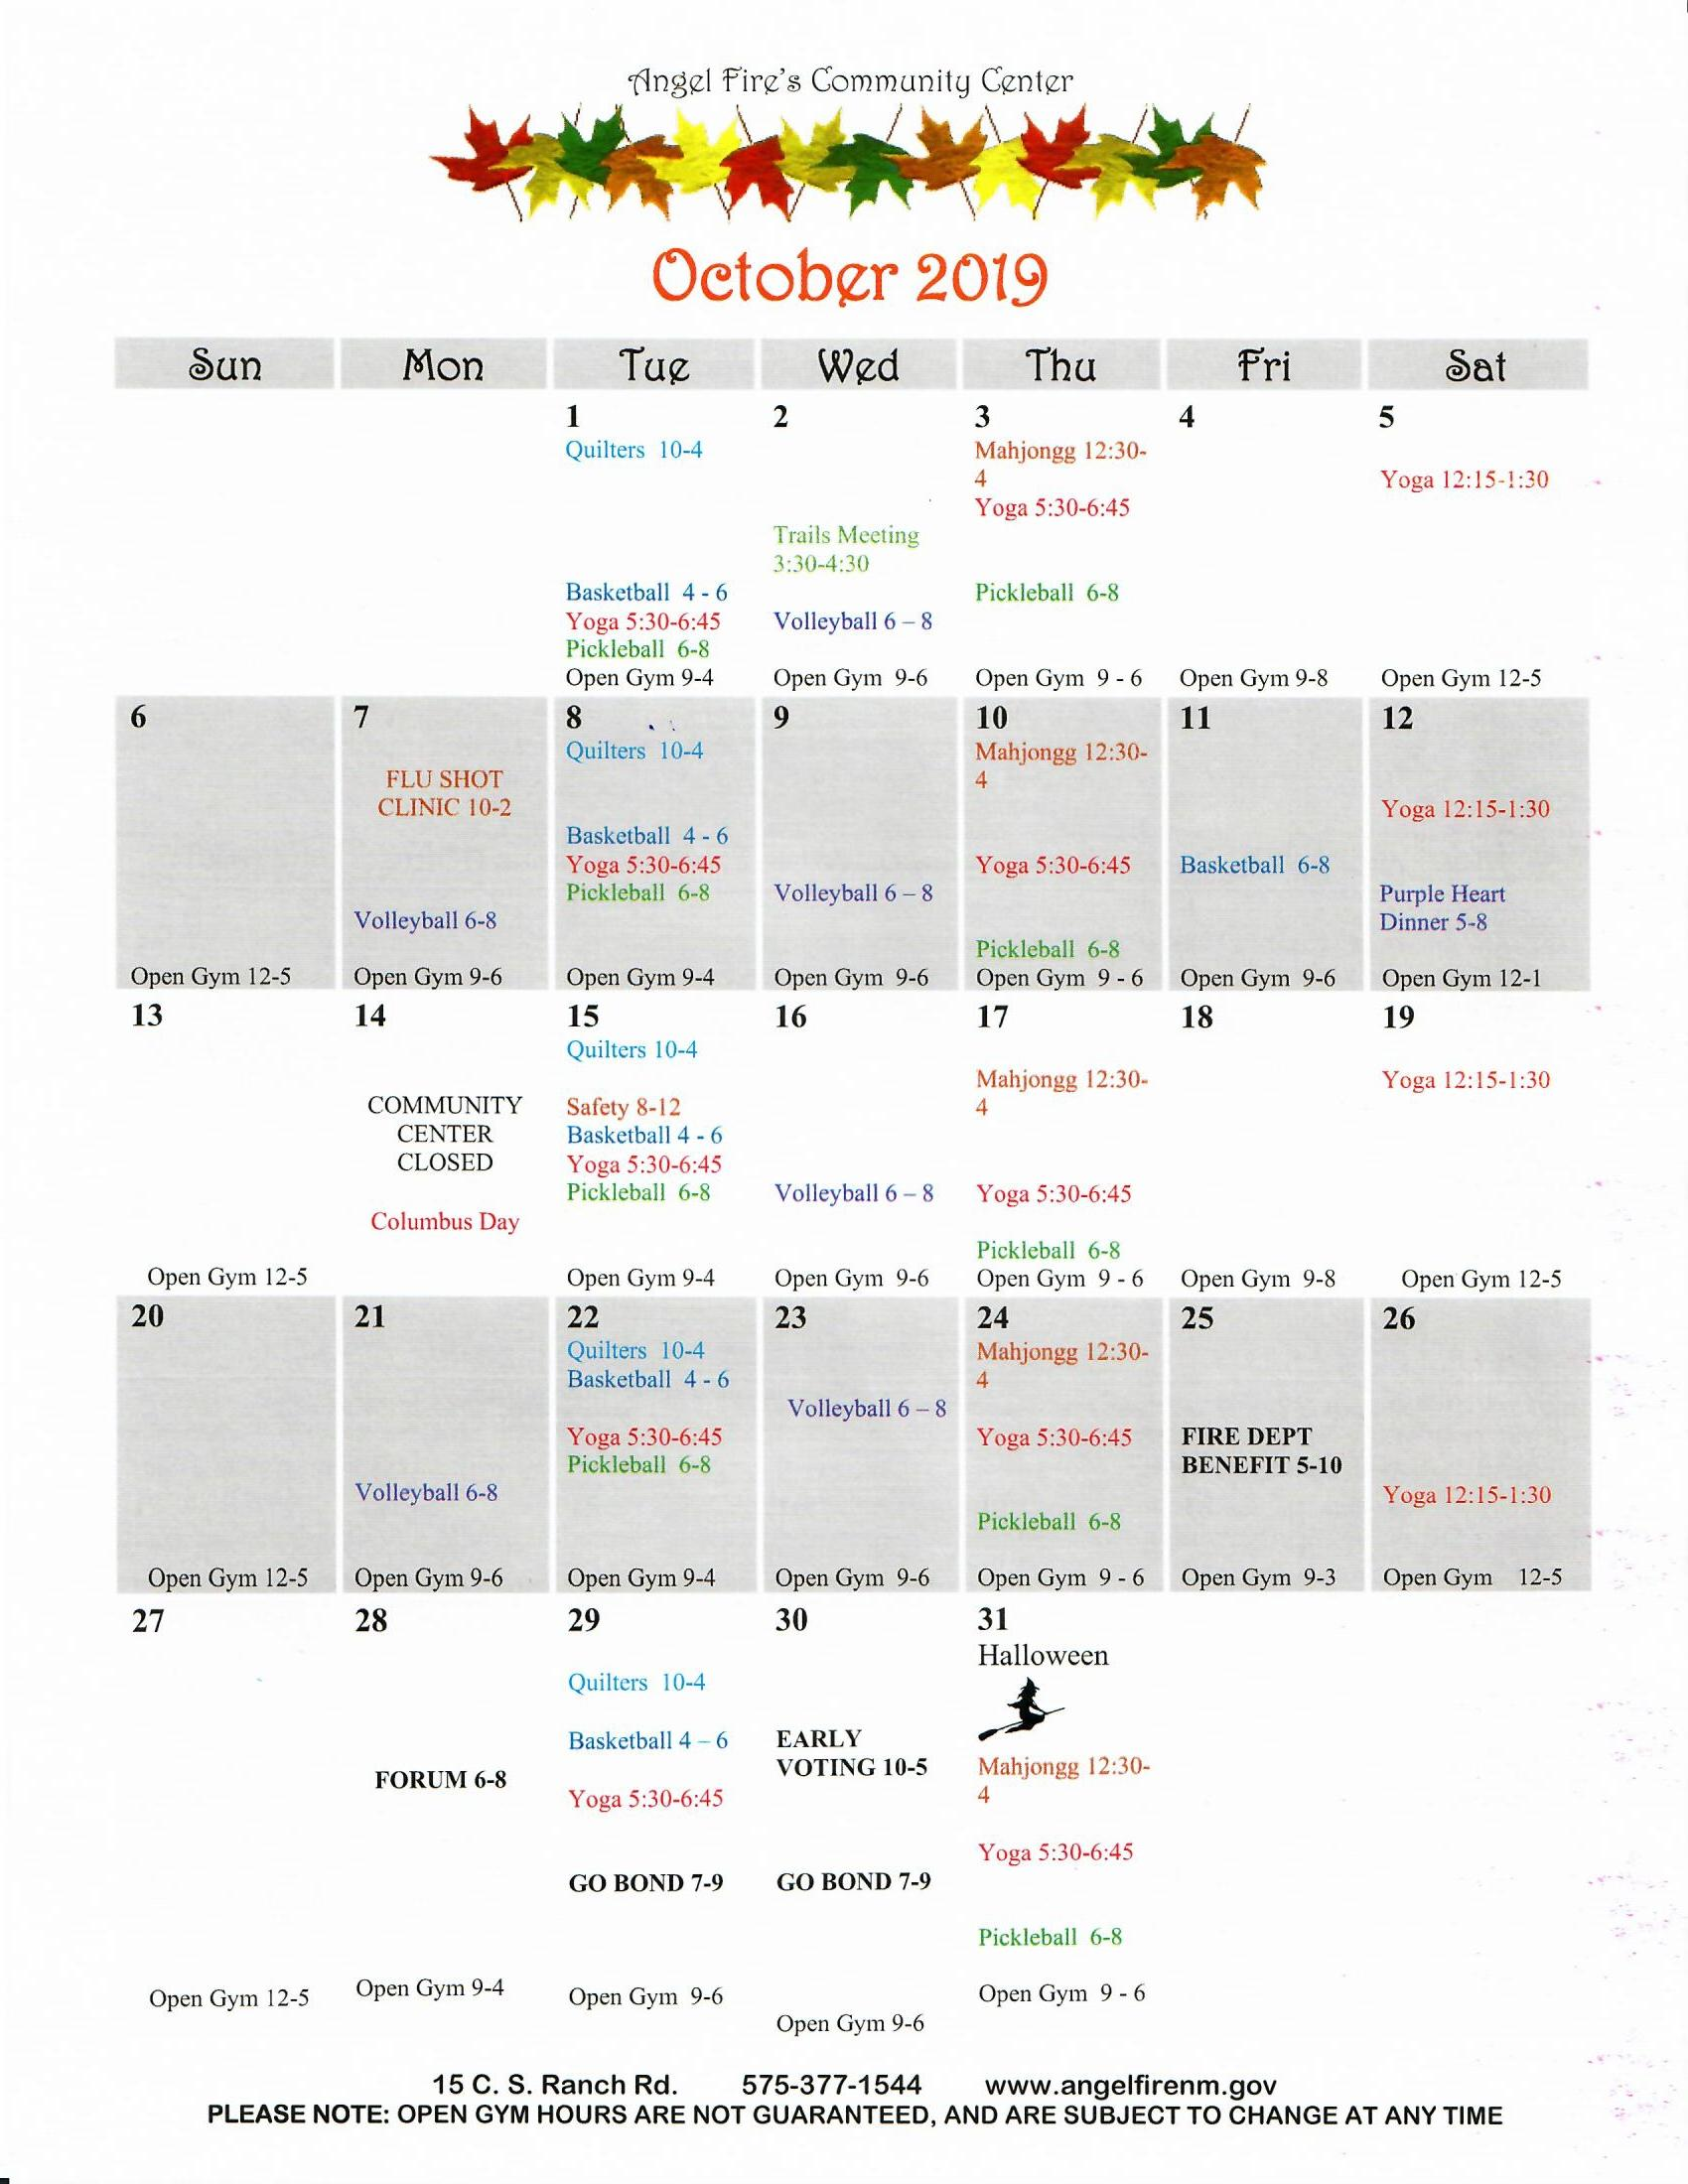 Oct.2019 Community Center calendar